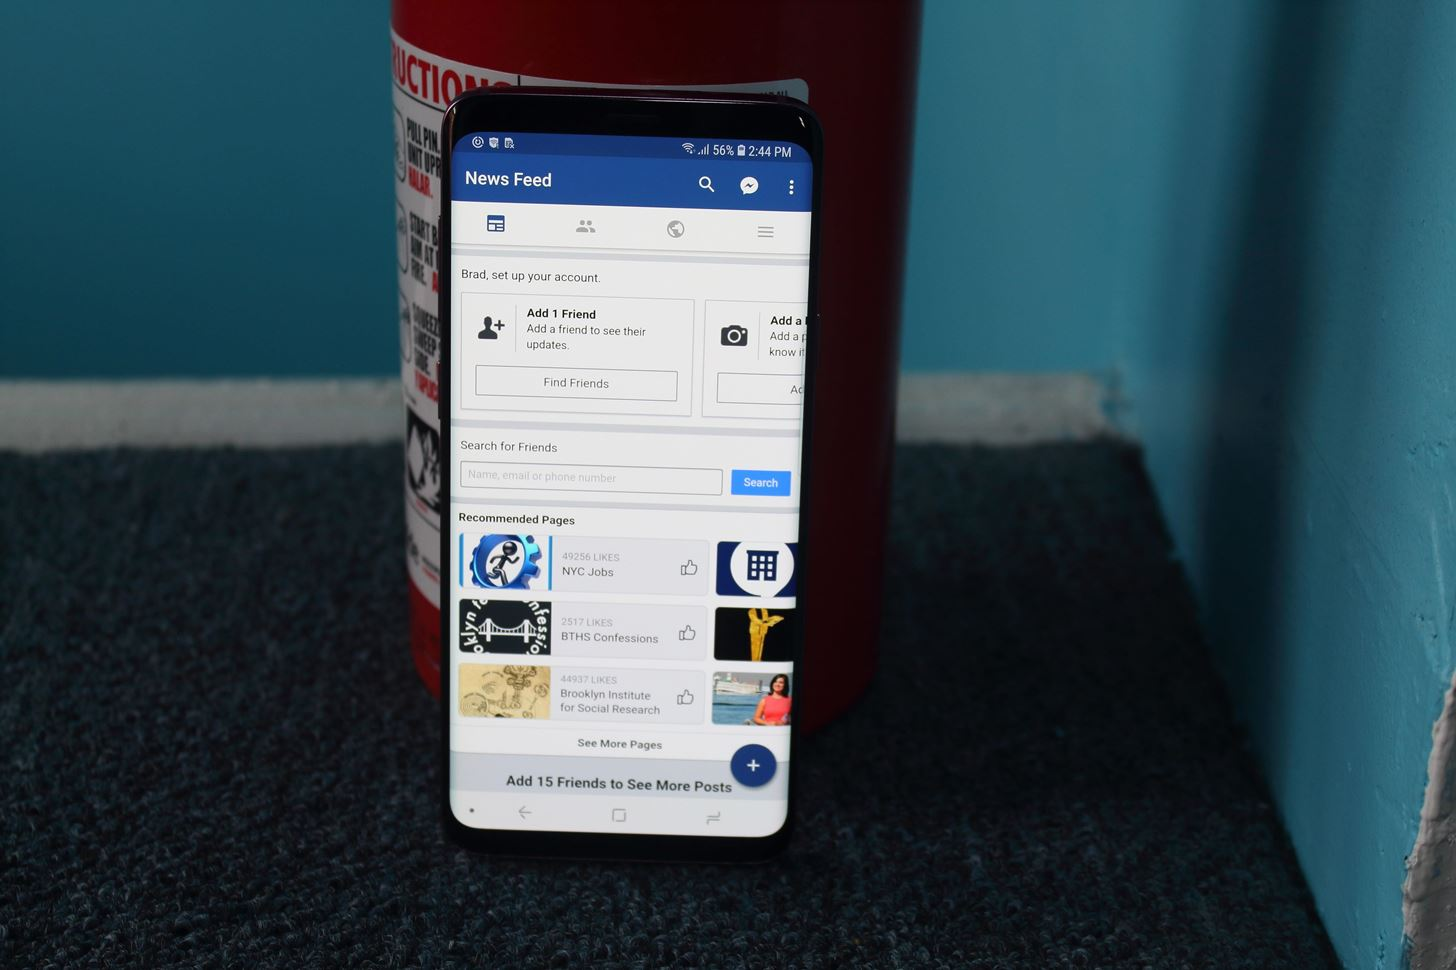 Samsung, Not Apple, Makes the Best Social Media Phones (& We Can Prove It)